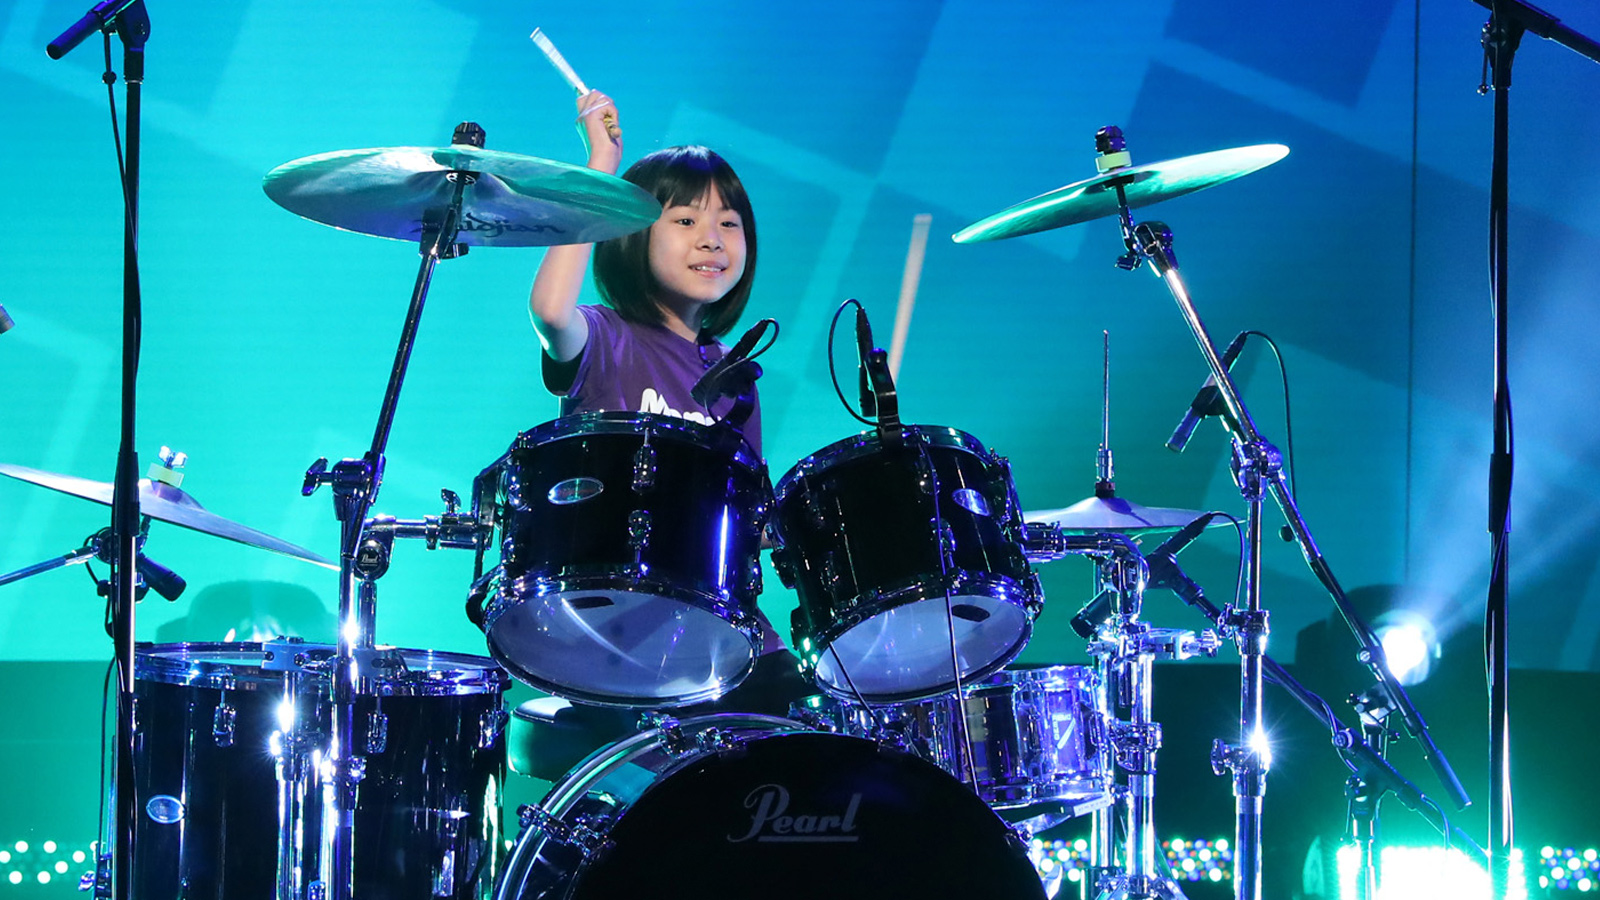 See Foo Fighters' Dave Grohl Surprise 9-Year-Old Drum Prodigy on 'The Ellen Show'